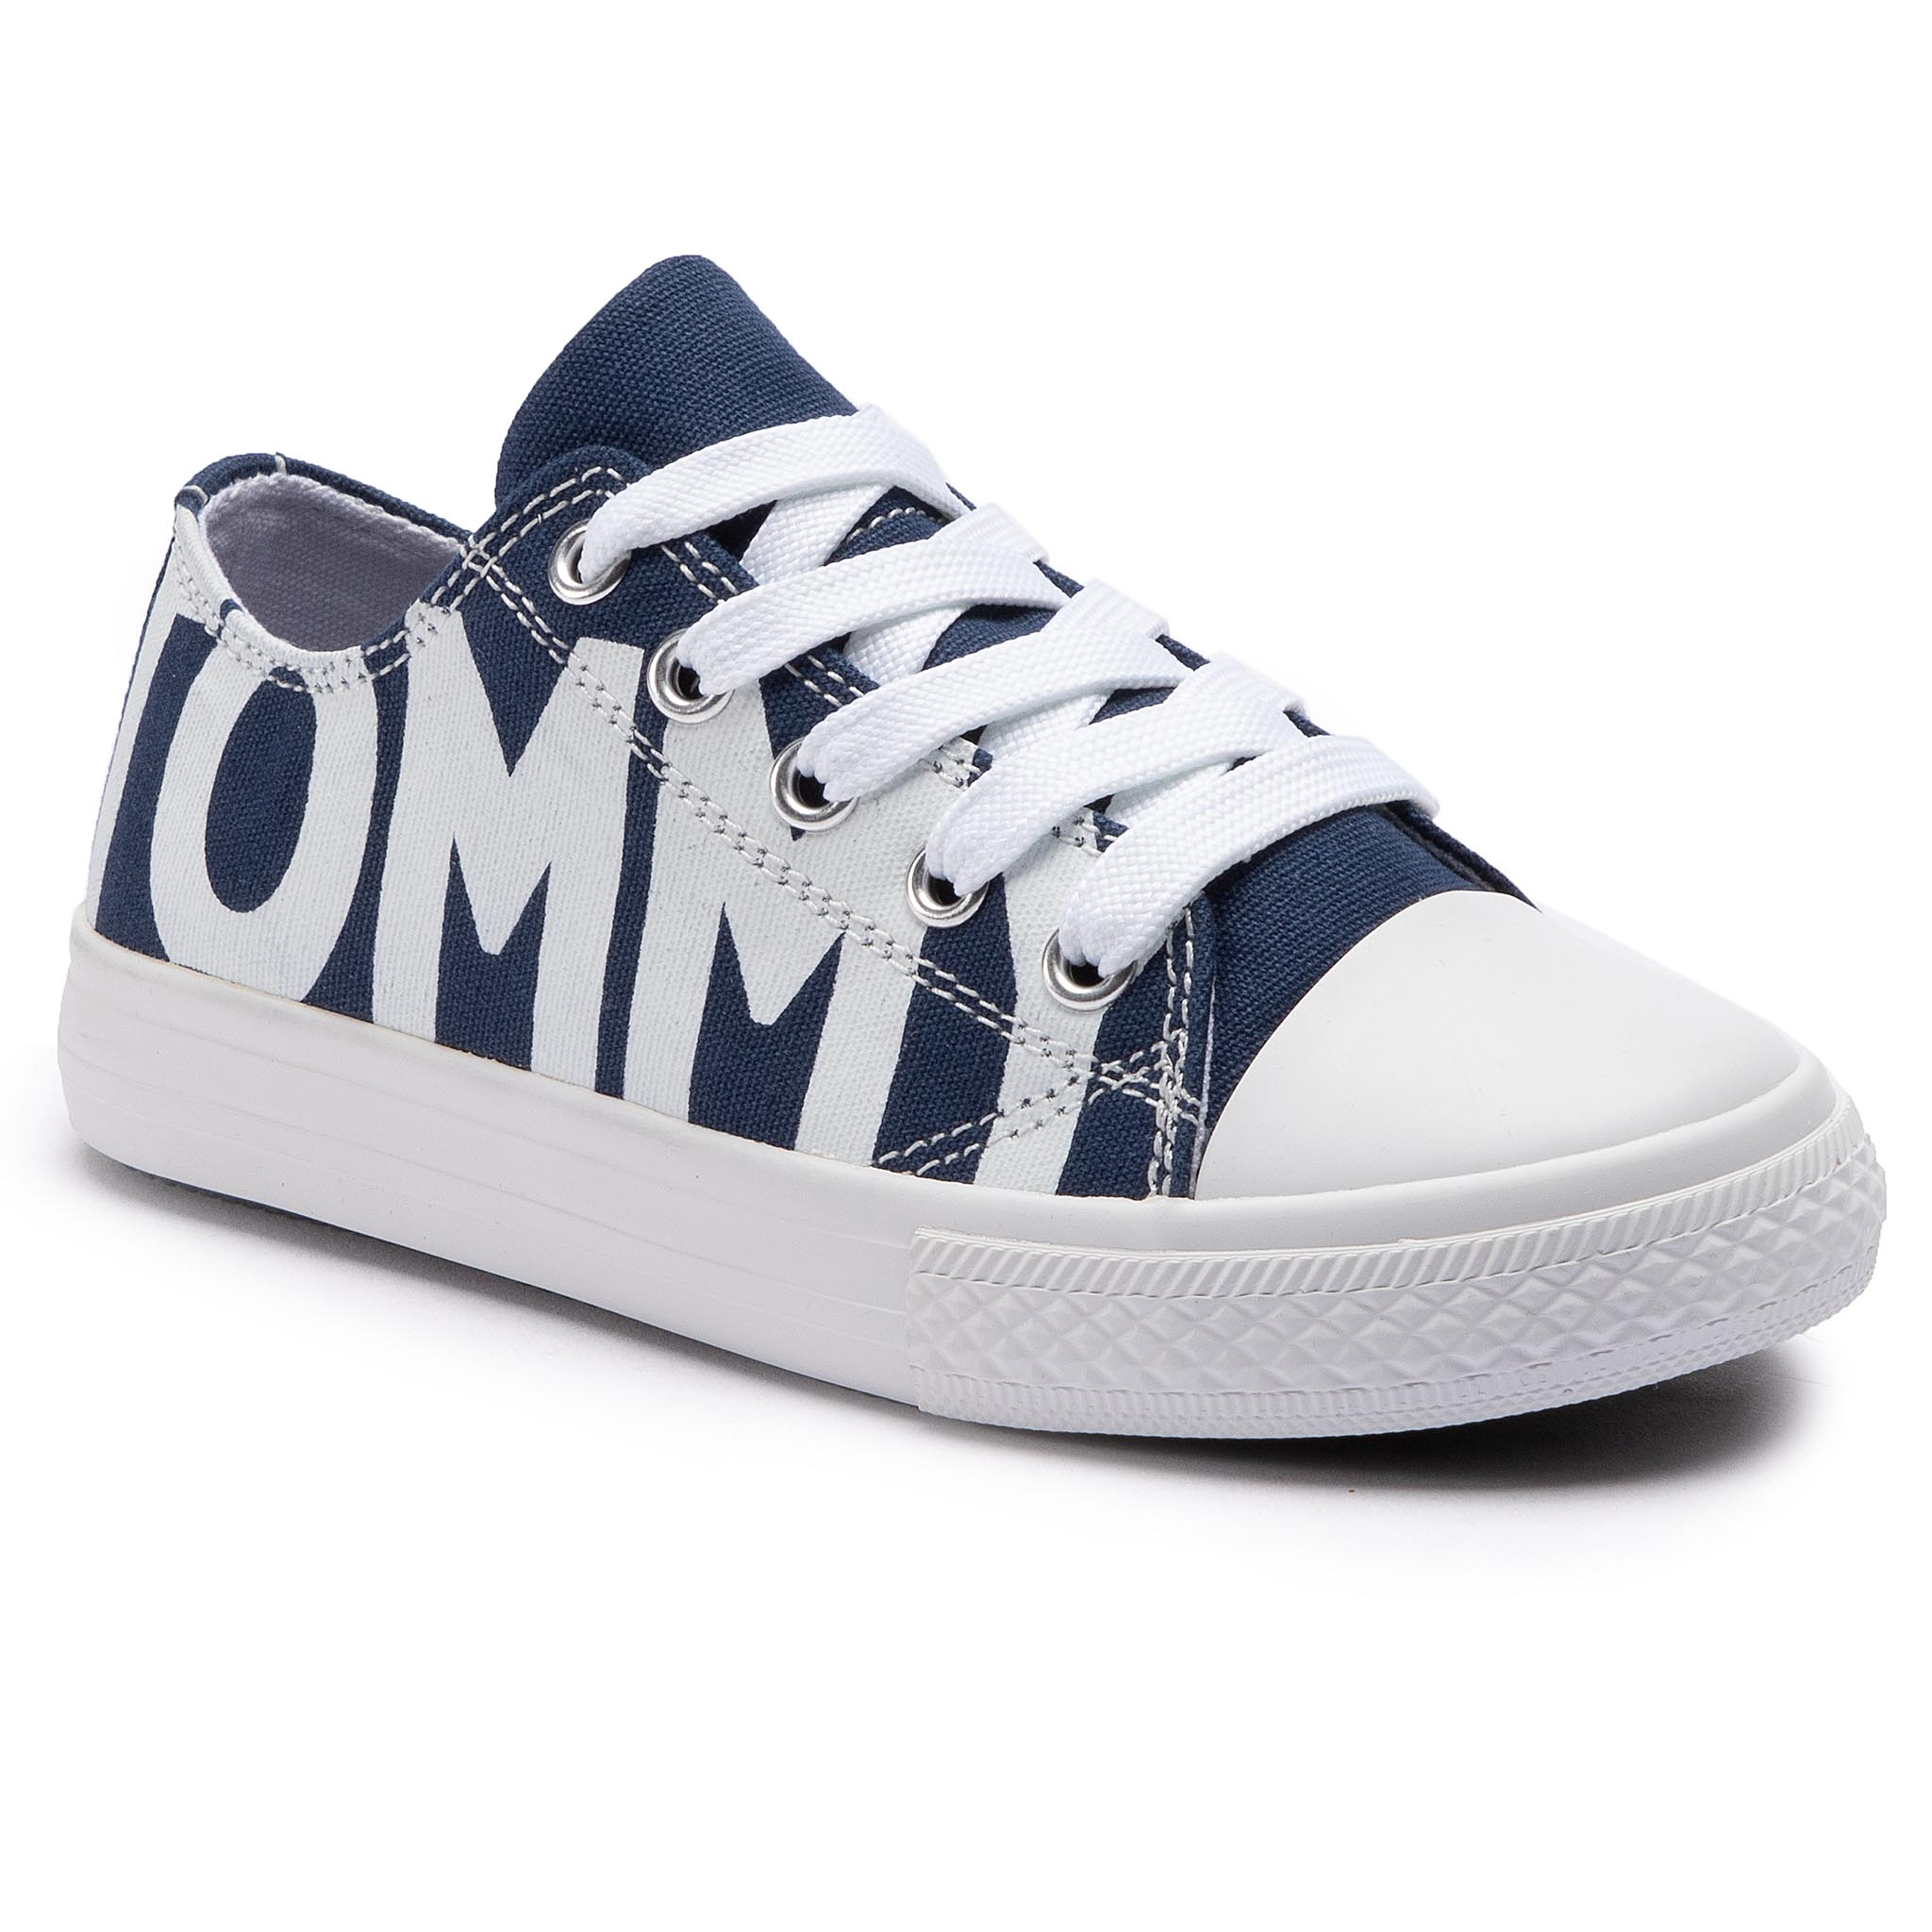 ffad5205c262 Sneakers TOMMY HILFIGER Low Cut Lace-Up Sneaker T3B4-30274-0618 Blue White  X007